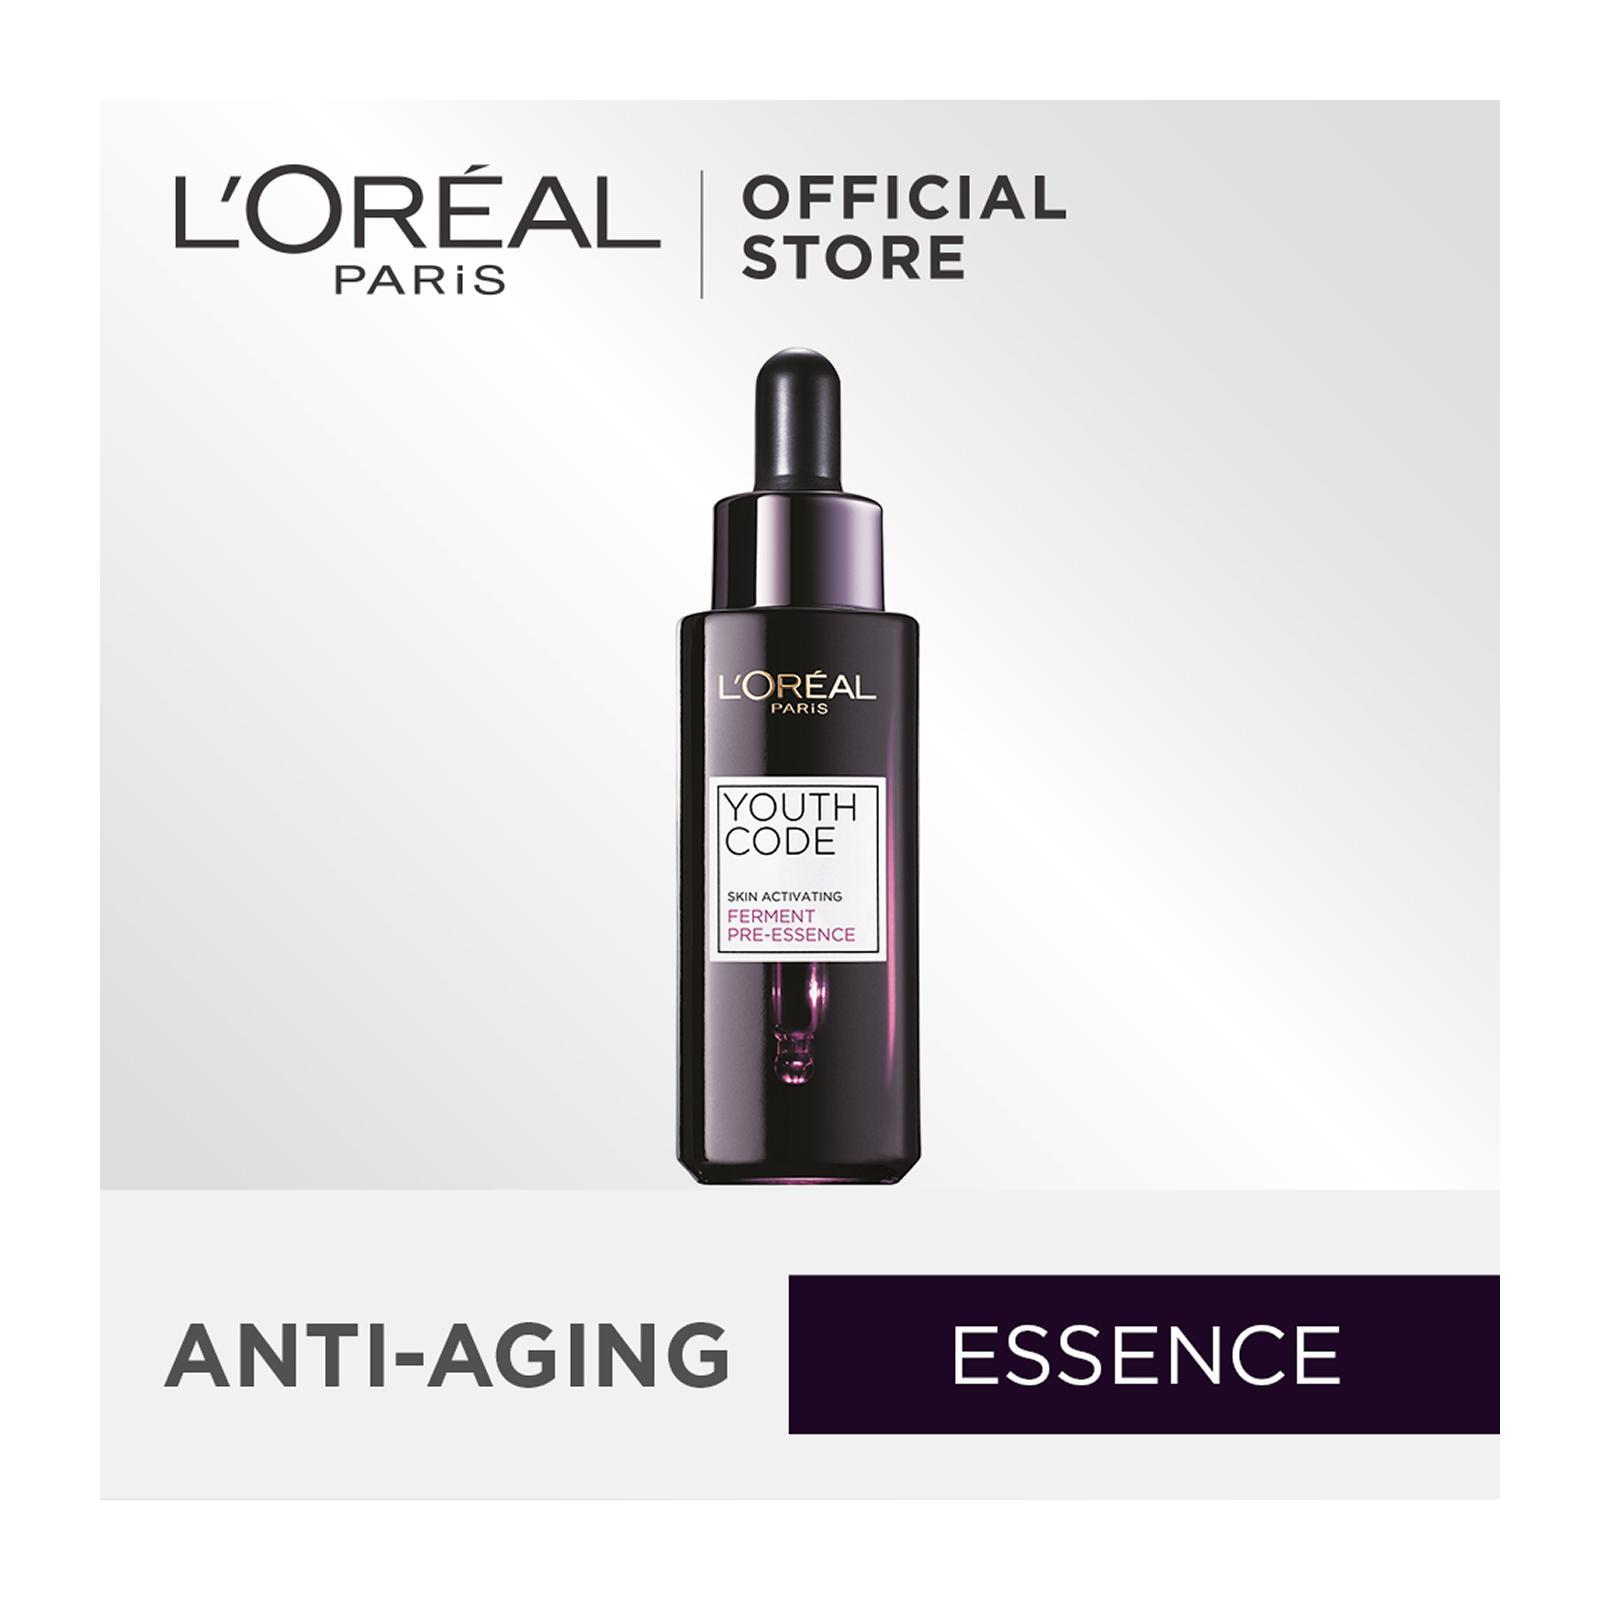 L'Oreal Youth Code Skin Activating Ferment Pre-Essence, 30ml